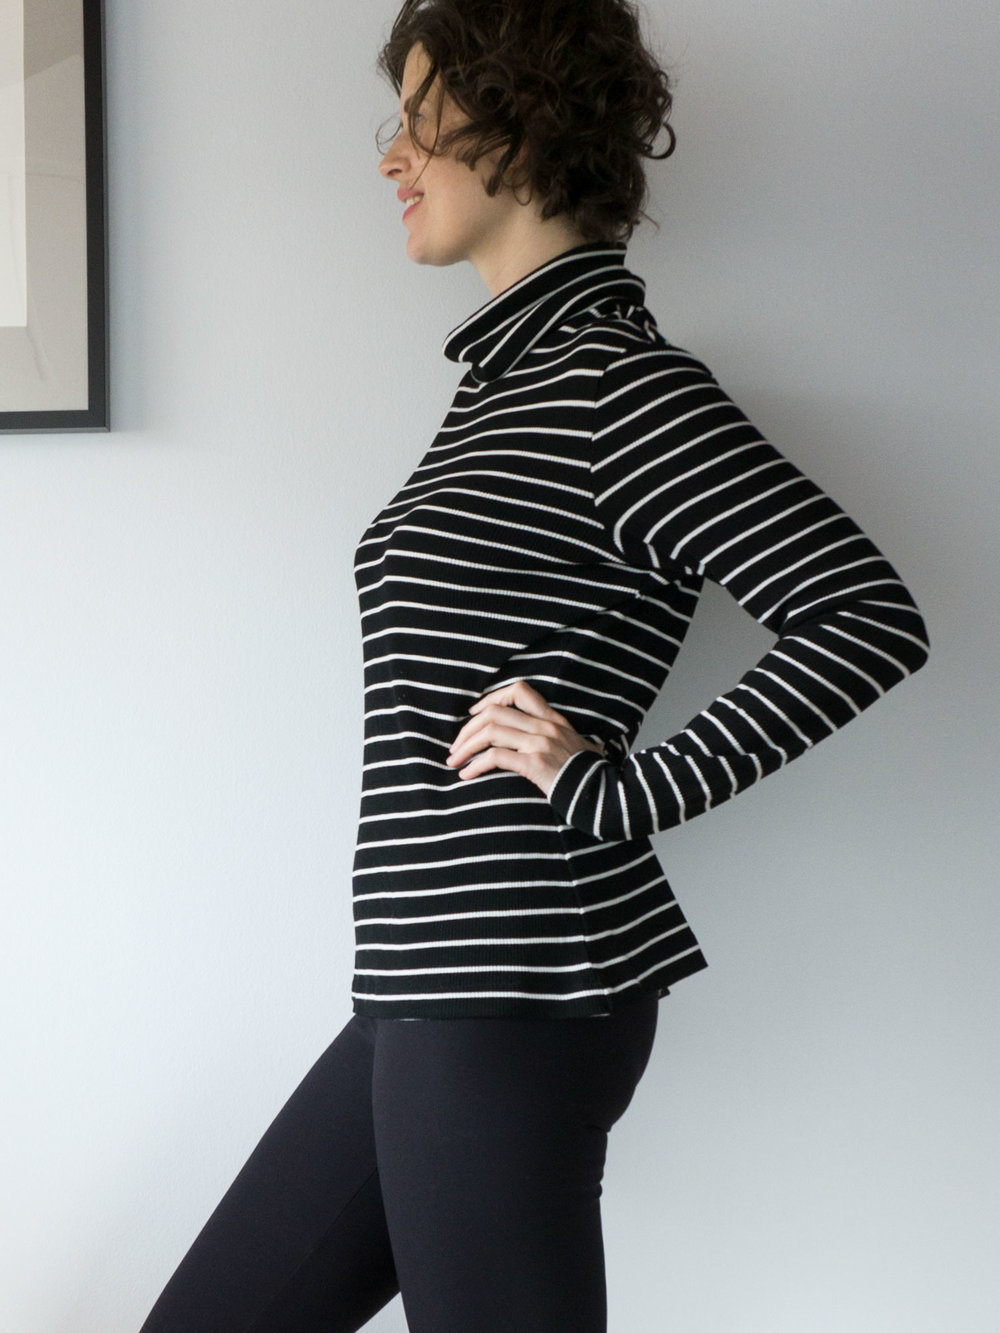 DIY Striped Turtleneck – Seamwork Neenah Pattern | Sew DIY